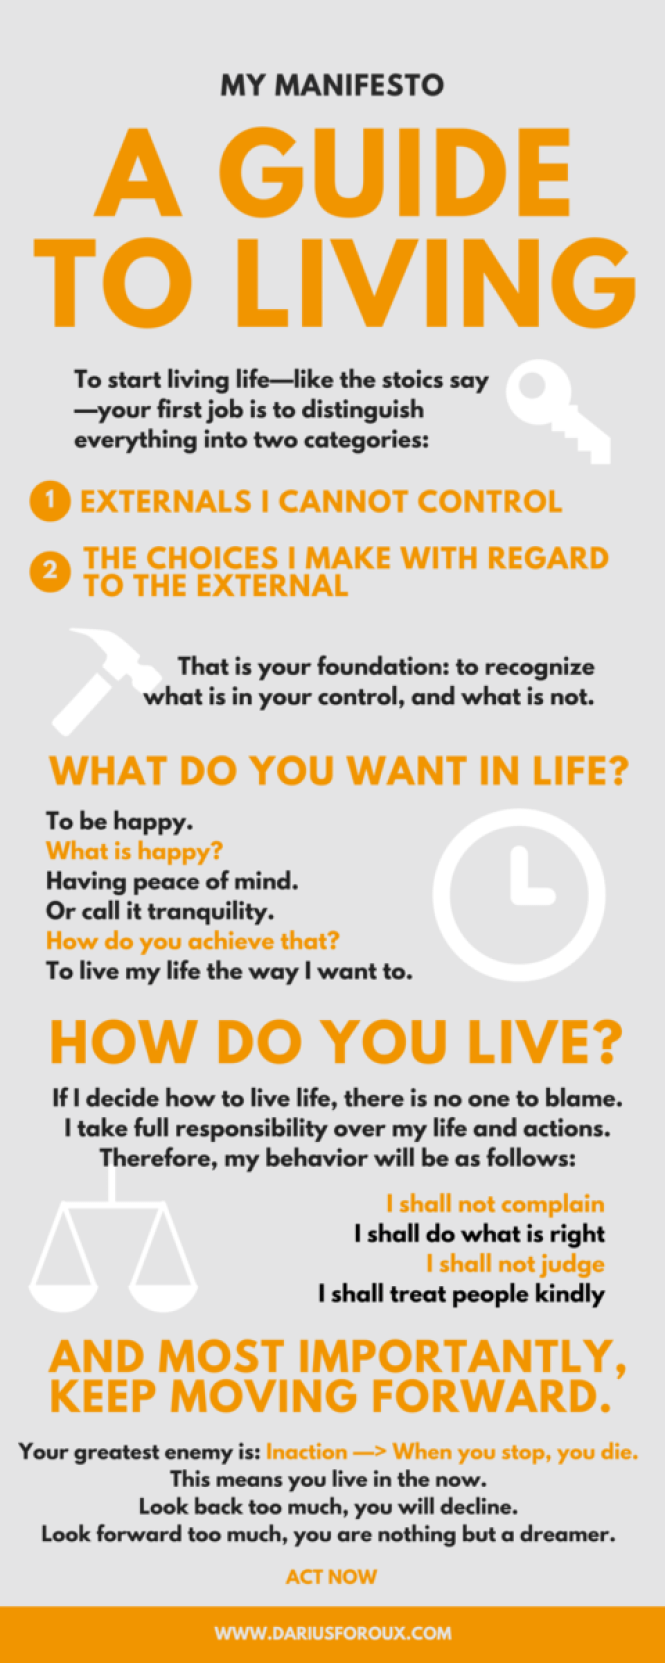 A guide to living